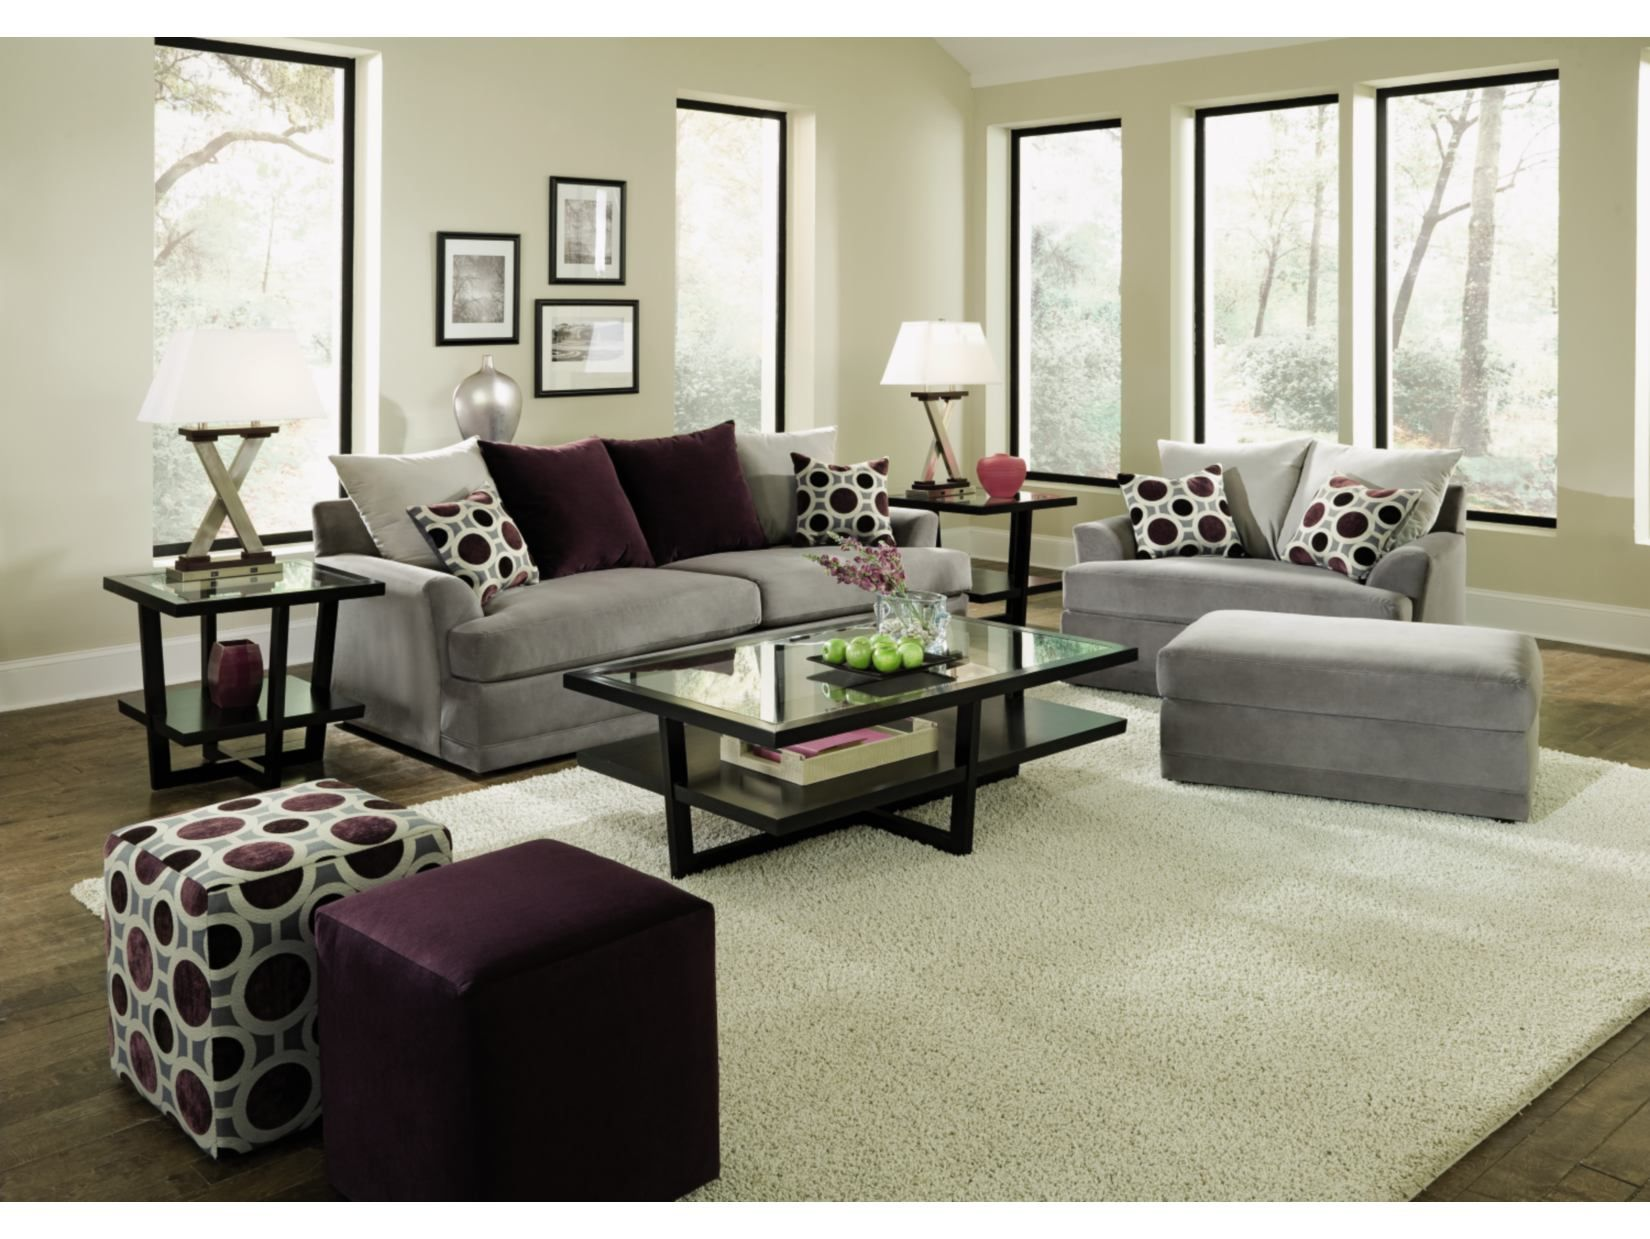 Home City Furniture Set Decoration Amusing Radiance Pewter Sofa  Value City Furniture Grey Sofa And Love . Design Ideas